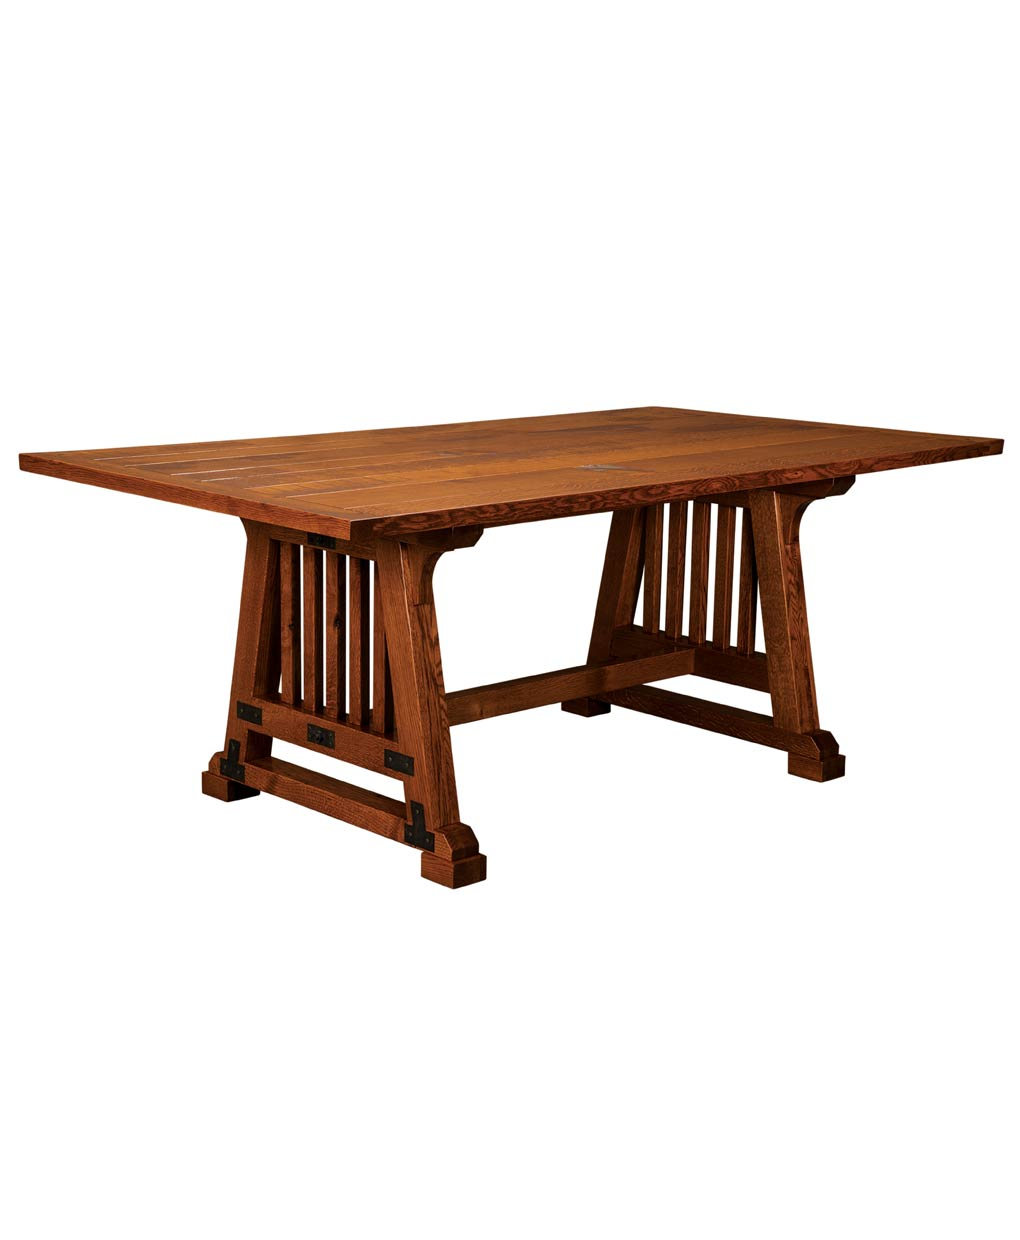 Allegheny Trestle Table Amish Direct Furniture : AlleghenyTrestleTable from amishdirectfurniture.com size 1020 x 1240 jpeg 53kB